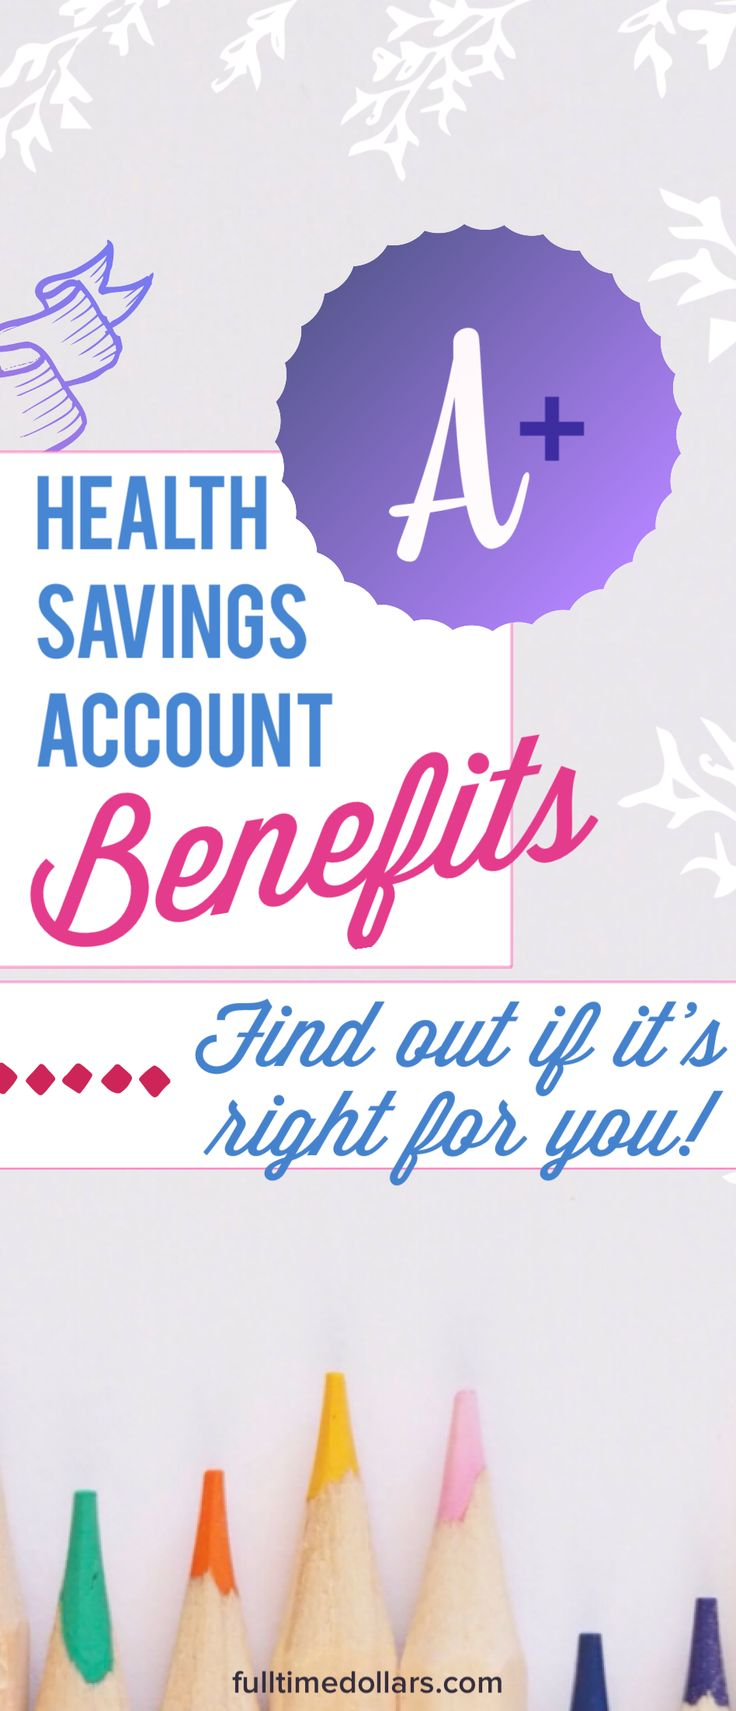 Want to know about the account that can be used for your health needs and double as a stealth IRA? Learn about the benefits. Article via @fulltimedollars #personalfinance #healthcare #retirement #savingsaccounts #moneytips #investing